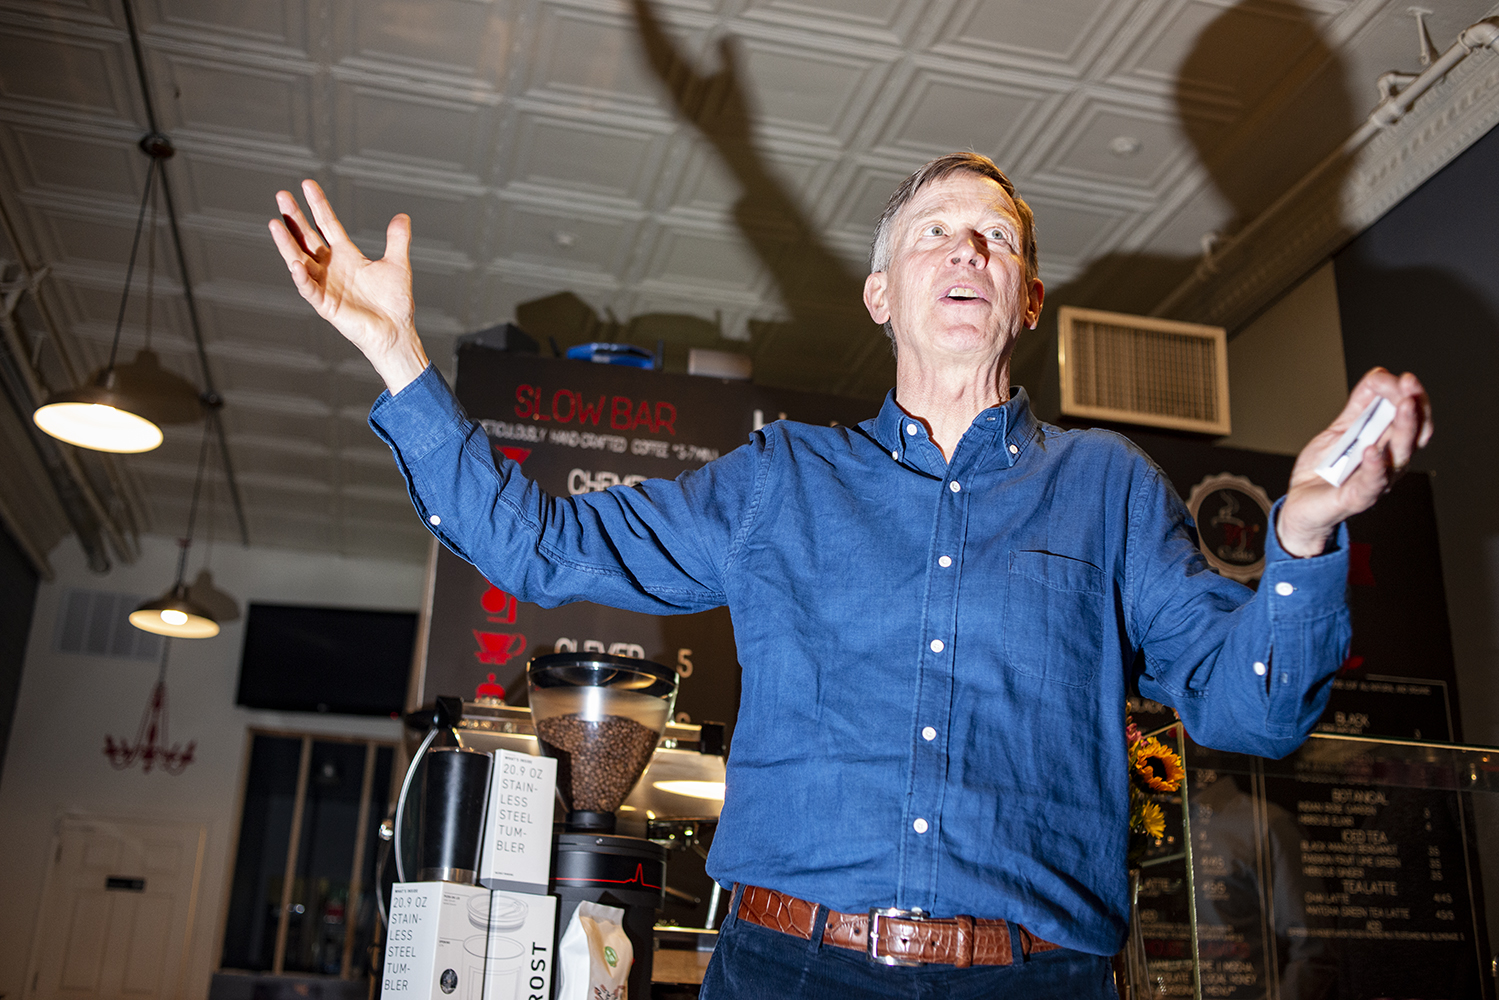 Former Colorado Gov. John Hickenlooper speaks during a campaign stop at the 392 Caffé in Clinton, Iowa on Saturday, March 9, 2019.